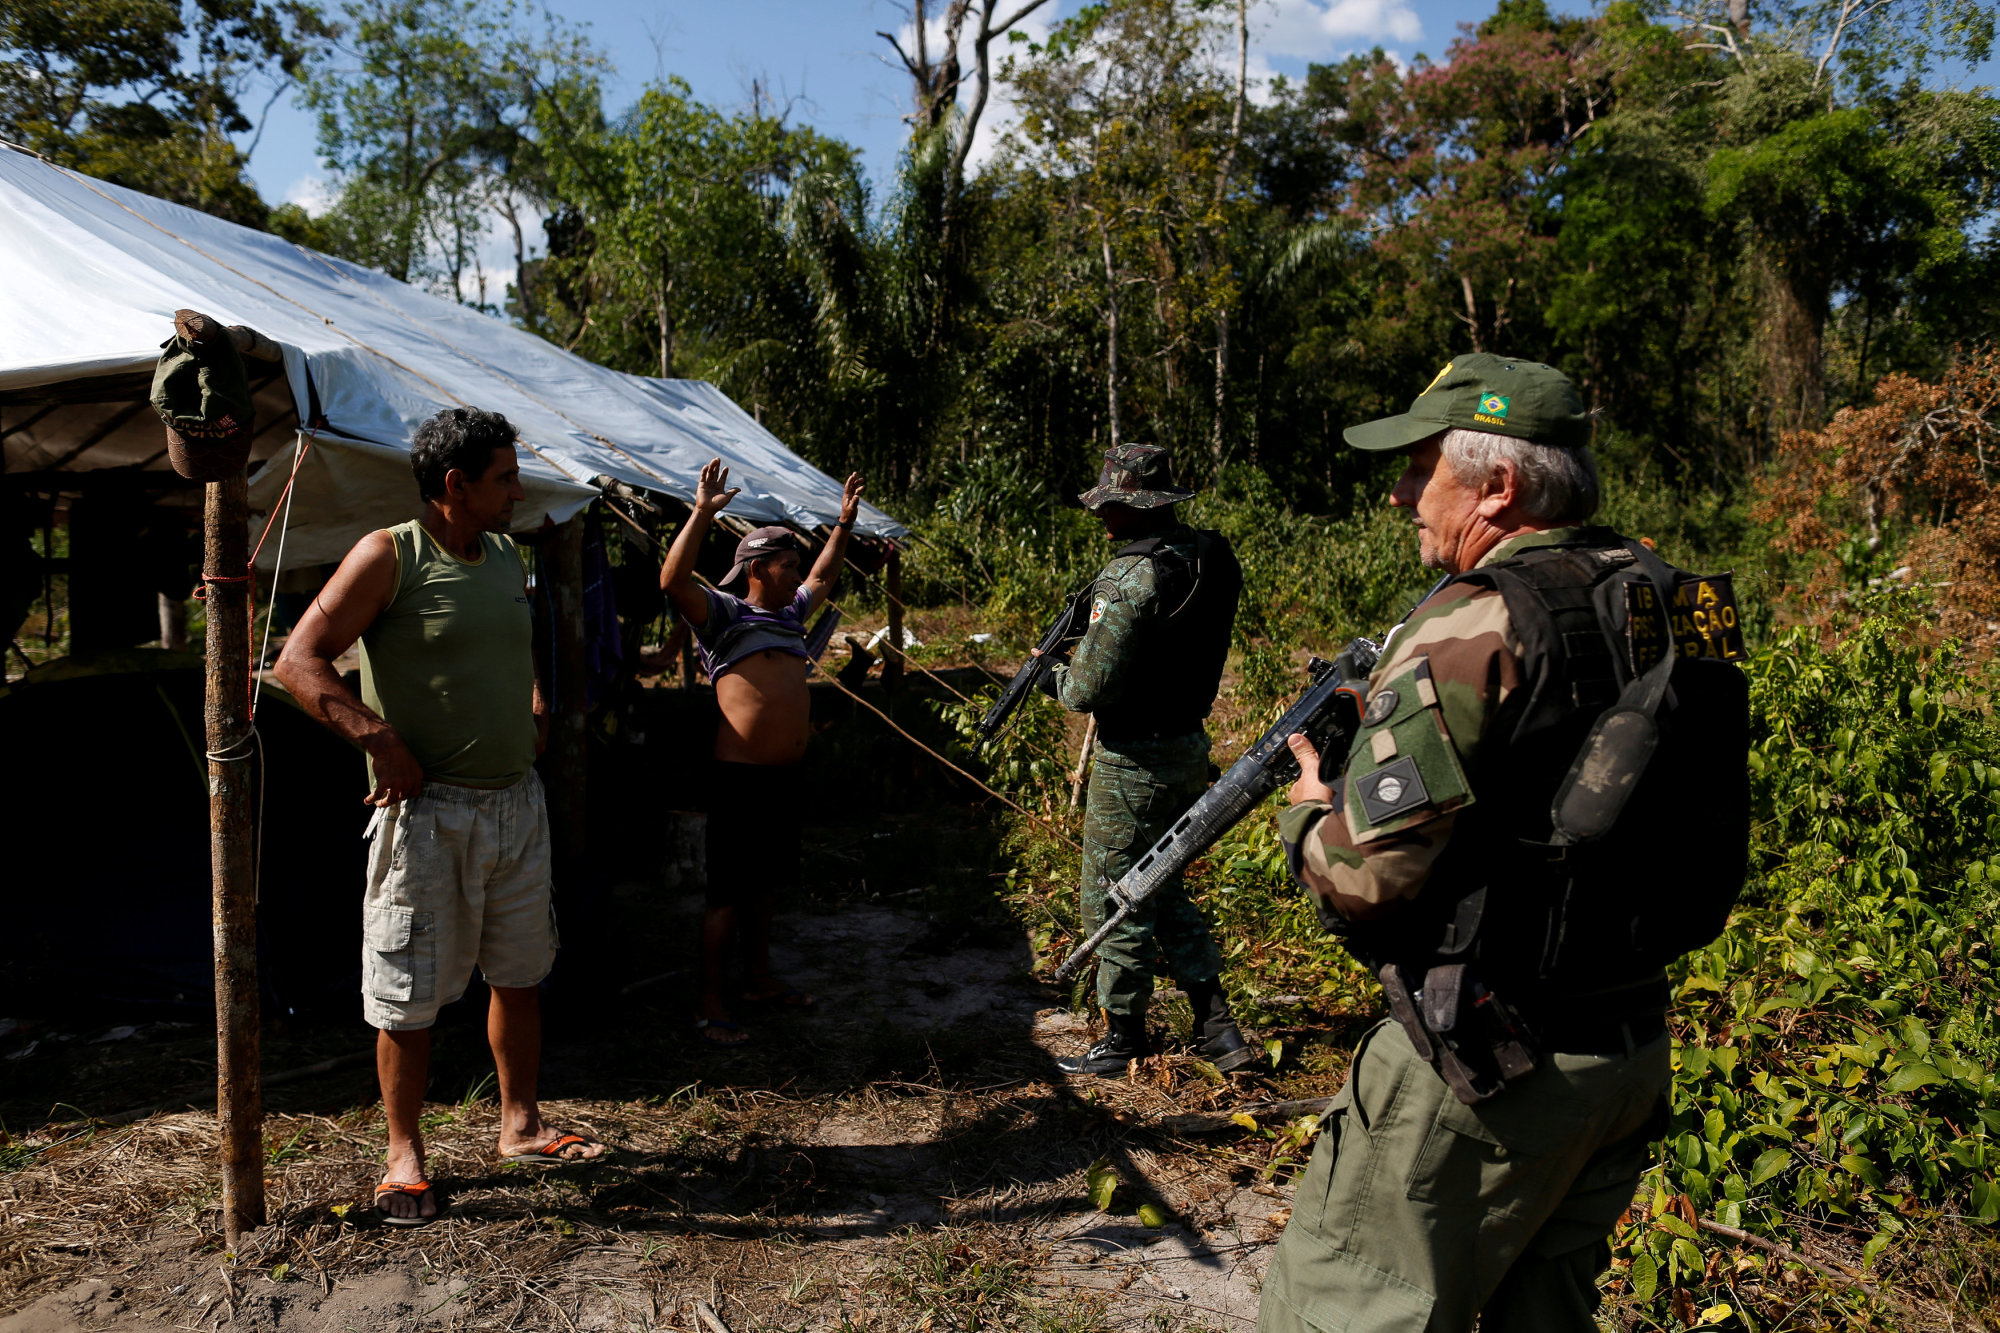 Agents of the Brazilian Institute for the Environment and Renewable Natural Resources, or Ibama, check a man at an illegal logging camp during 'Operation Green Wave' to combat illegal logging in Apui, in the southern region of the state of Amazonas, Brazil, July 28. | REUTERS